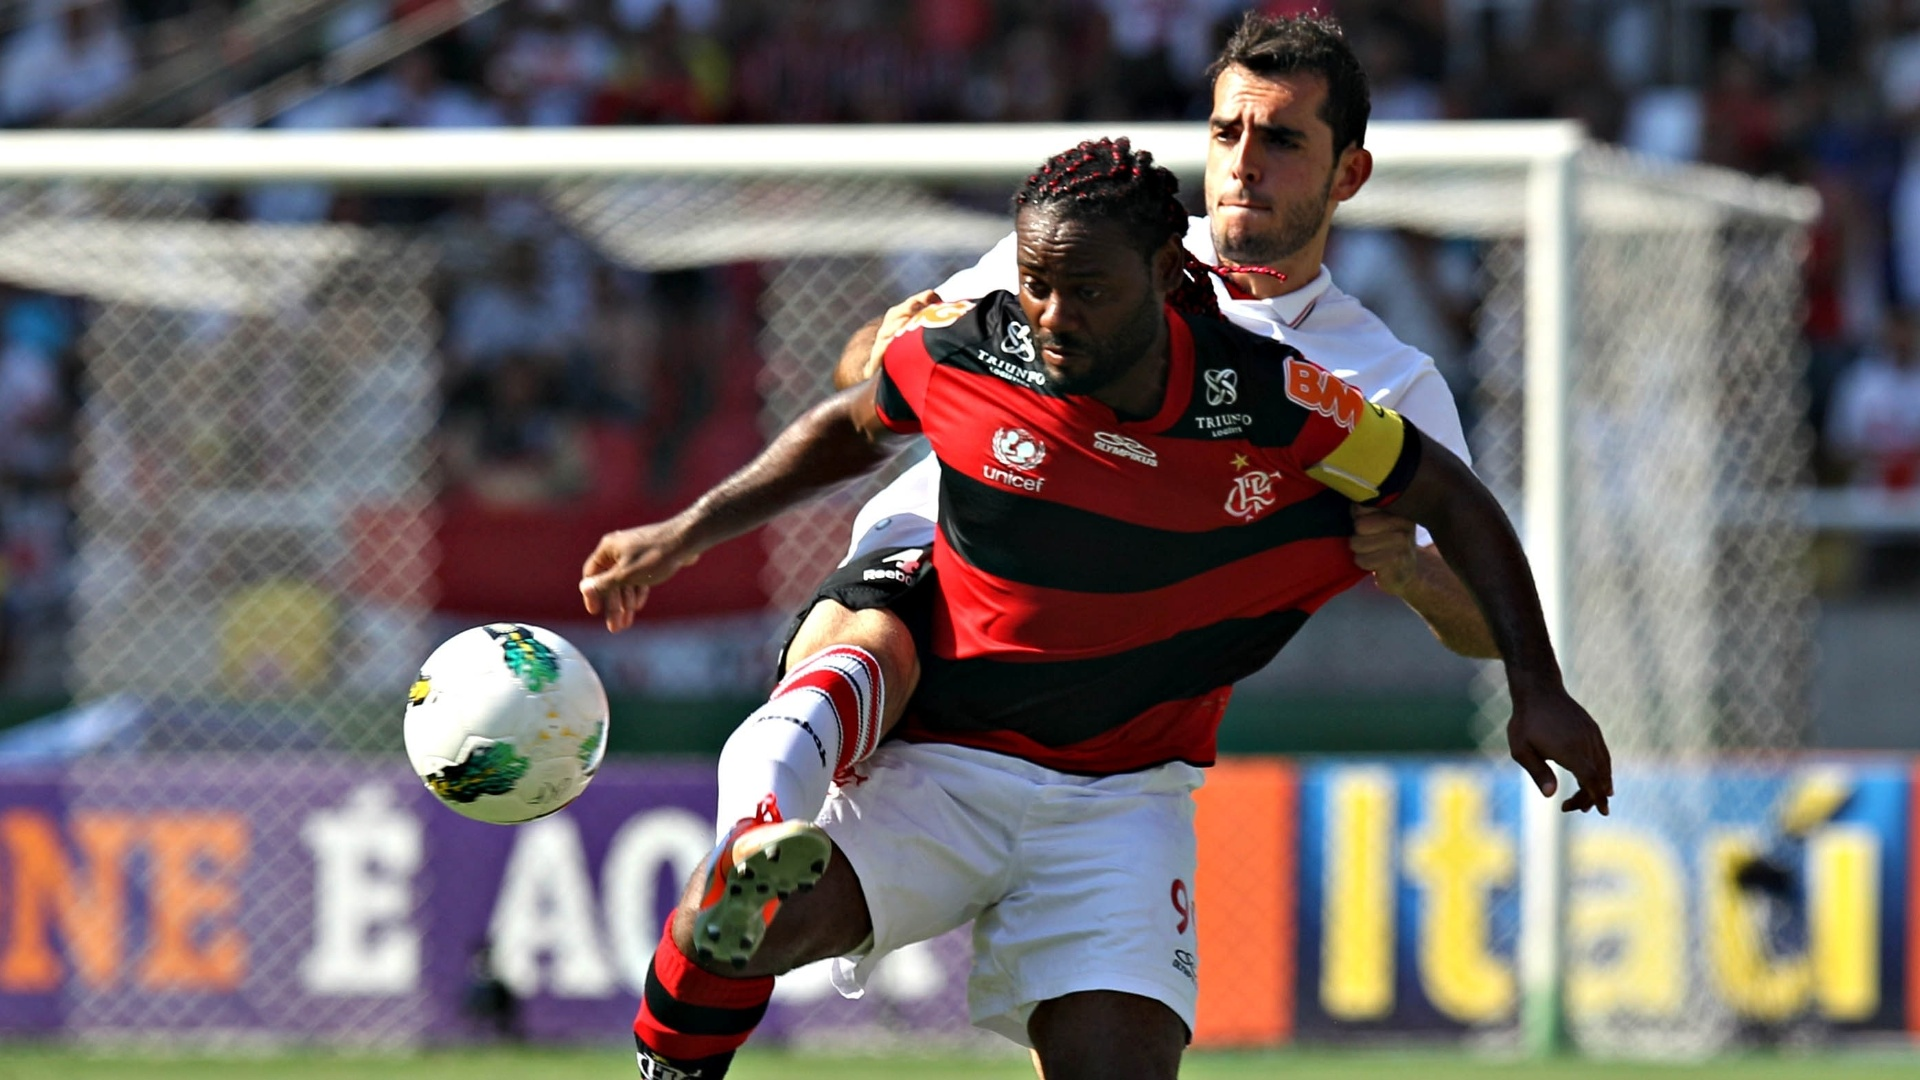 Vagner Love e Rhodolfo disputam pela boal durante partida entre So Paulo e Flamengo no Engenho